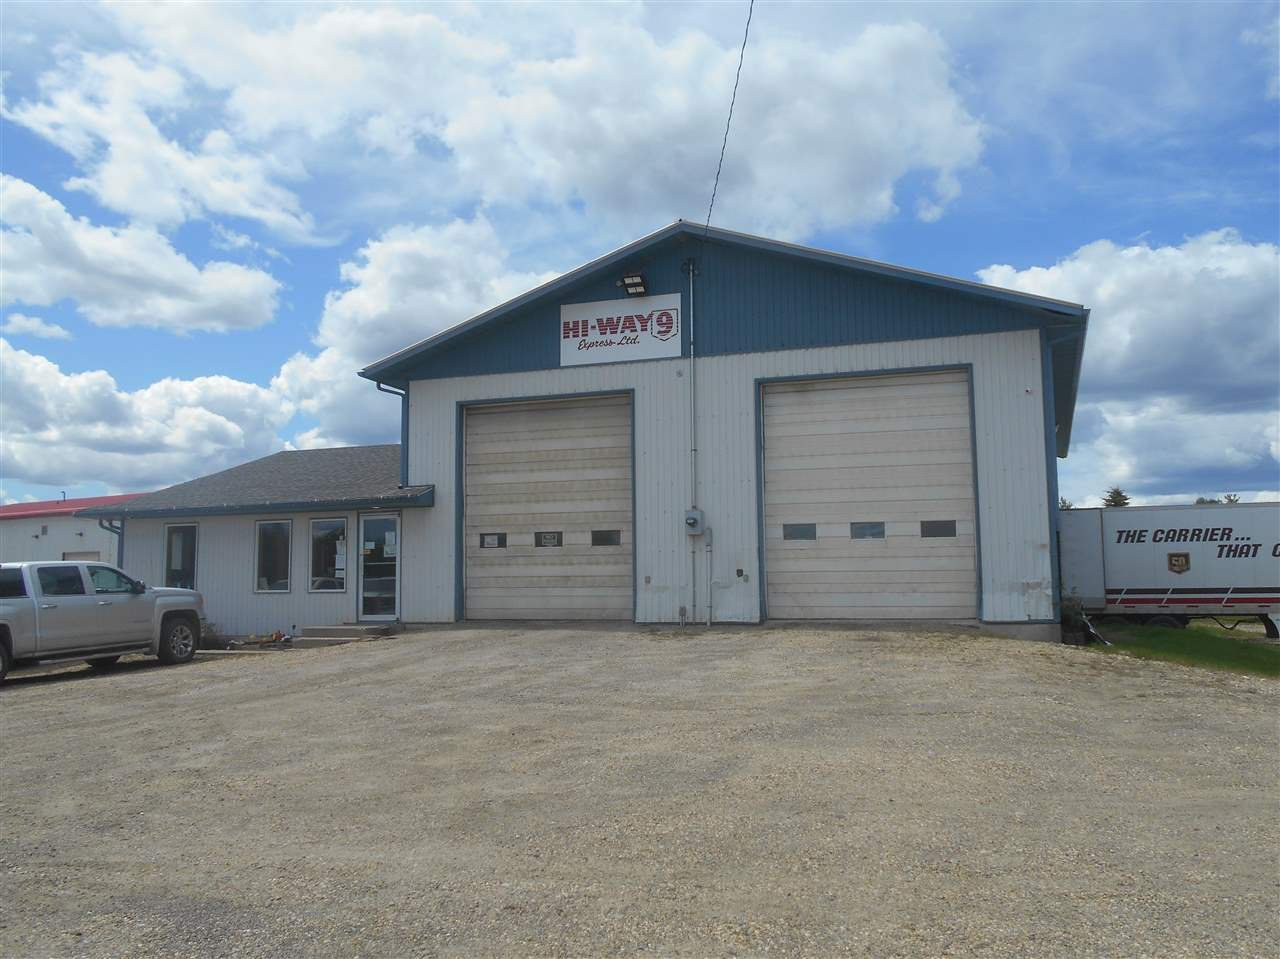 Main Photo: 5740 50A Street: Drayton Valley Industrial for sale or lease : MLS®# E4200376